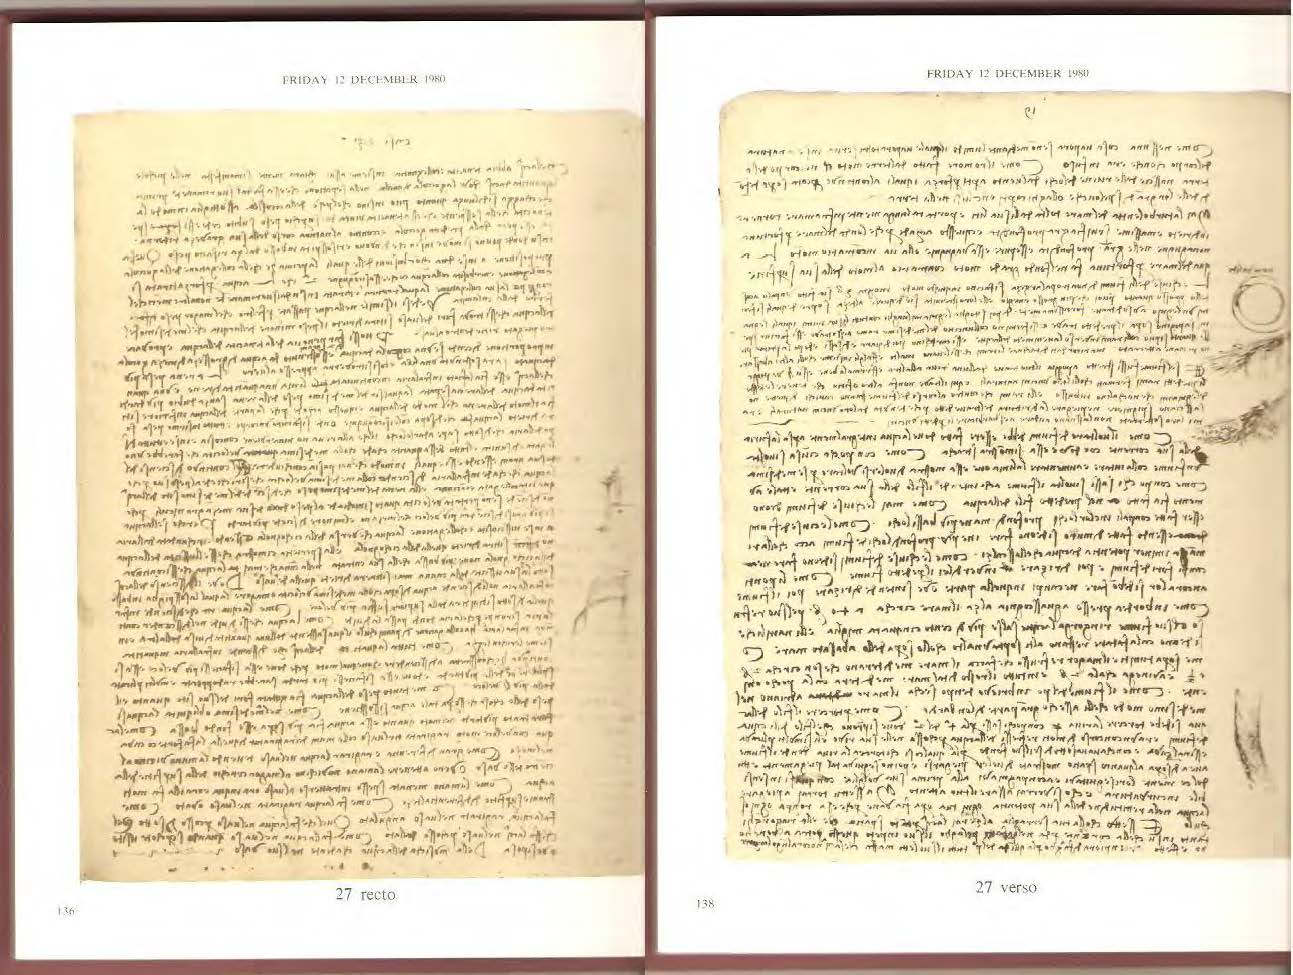 Codex_Leicester_Page_27_Image_0001.jpg